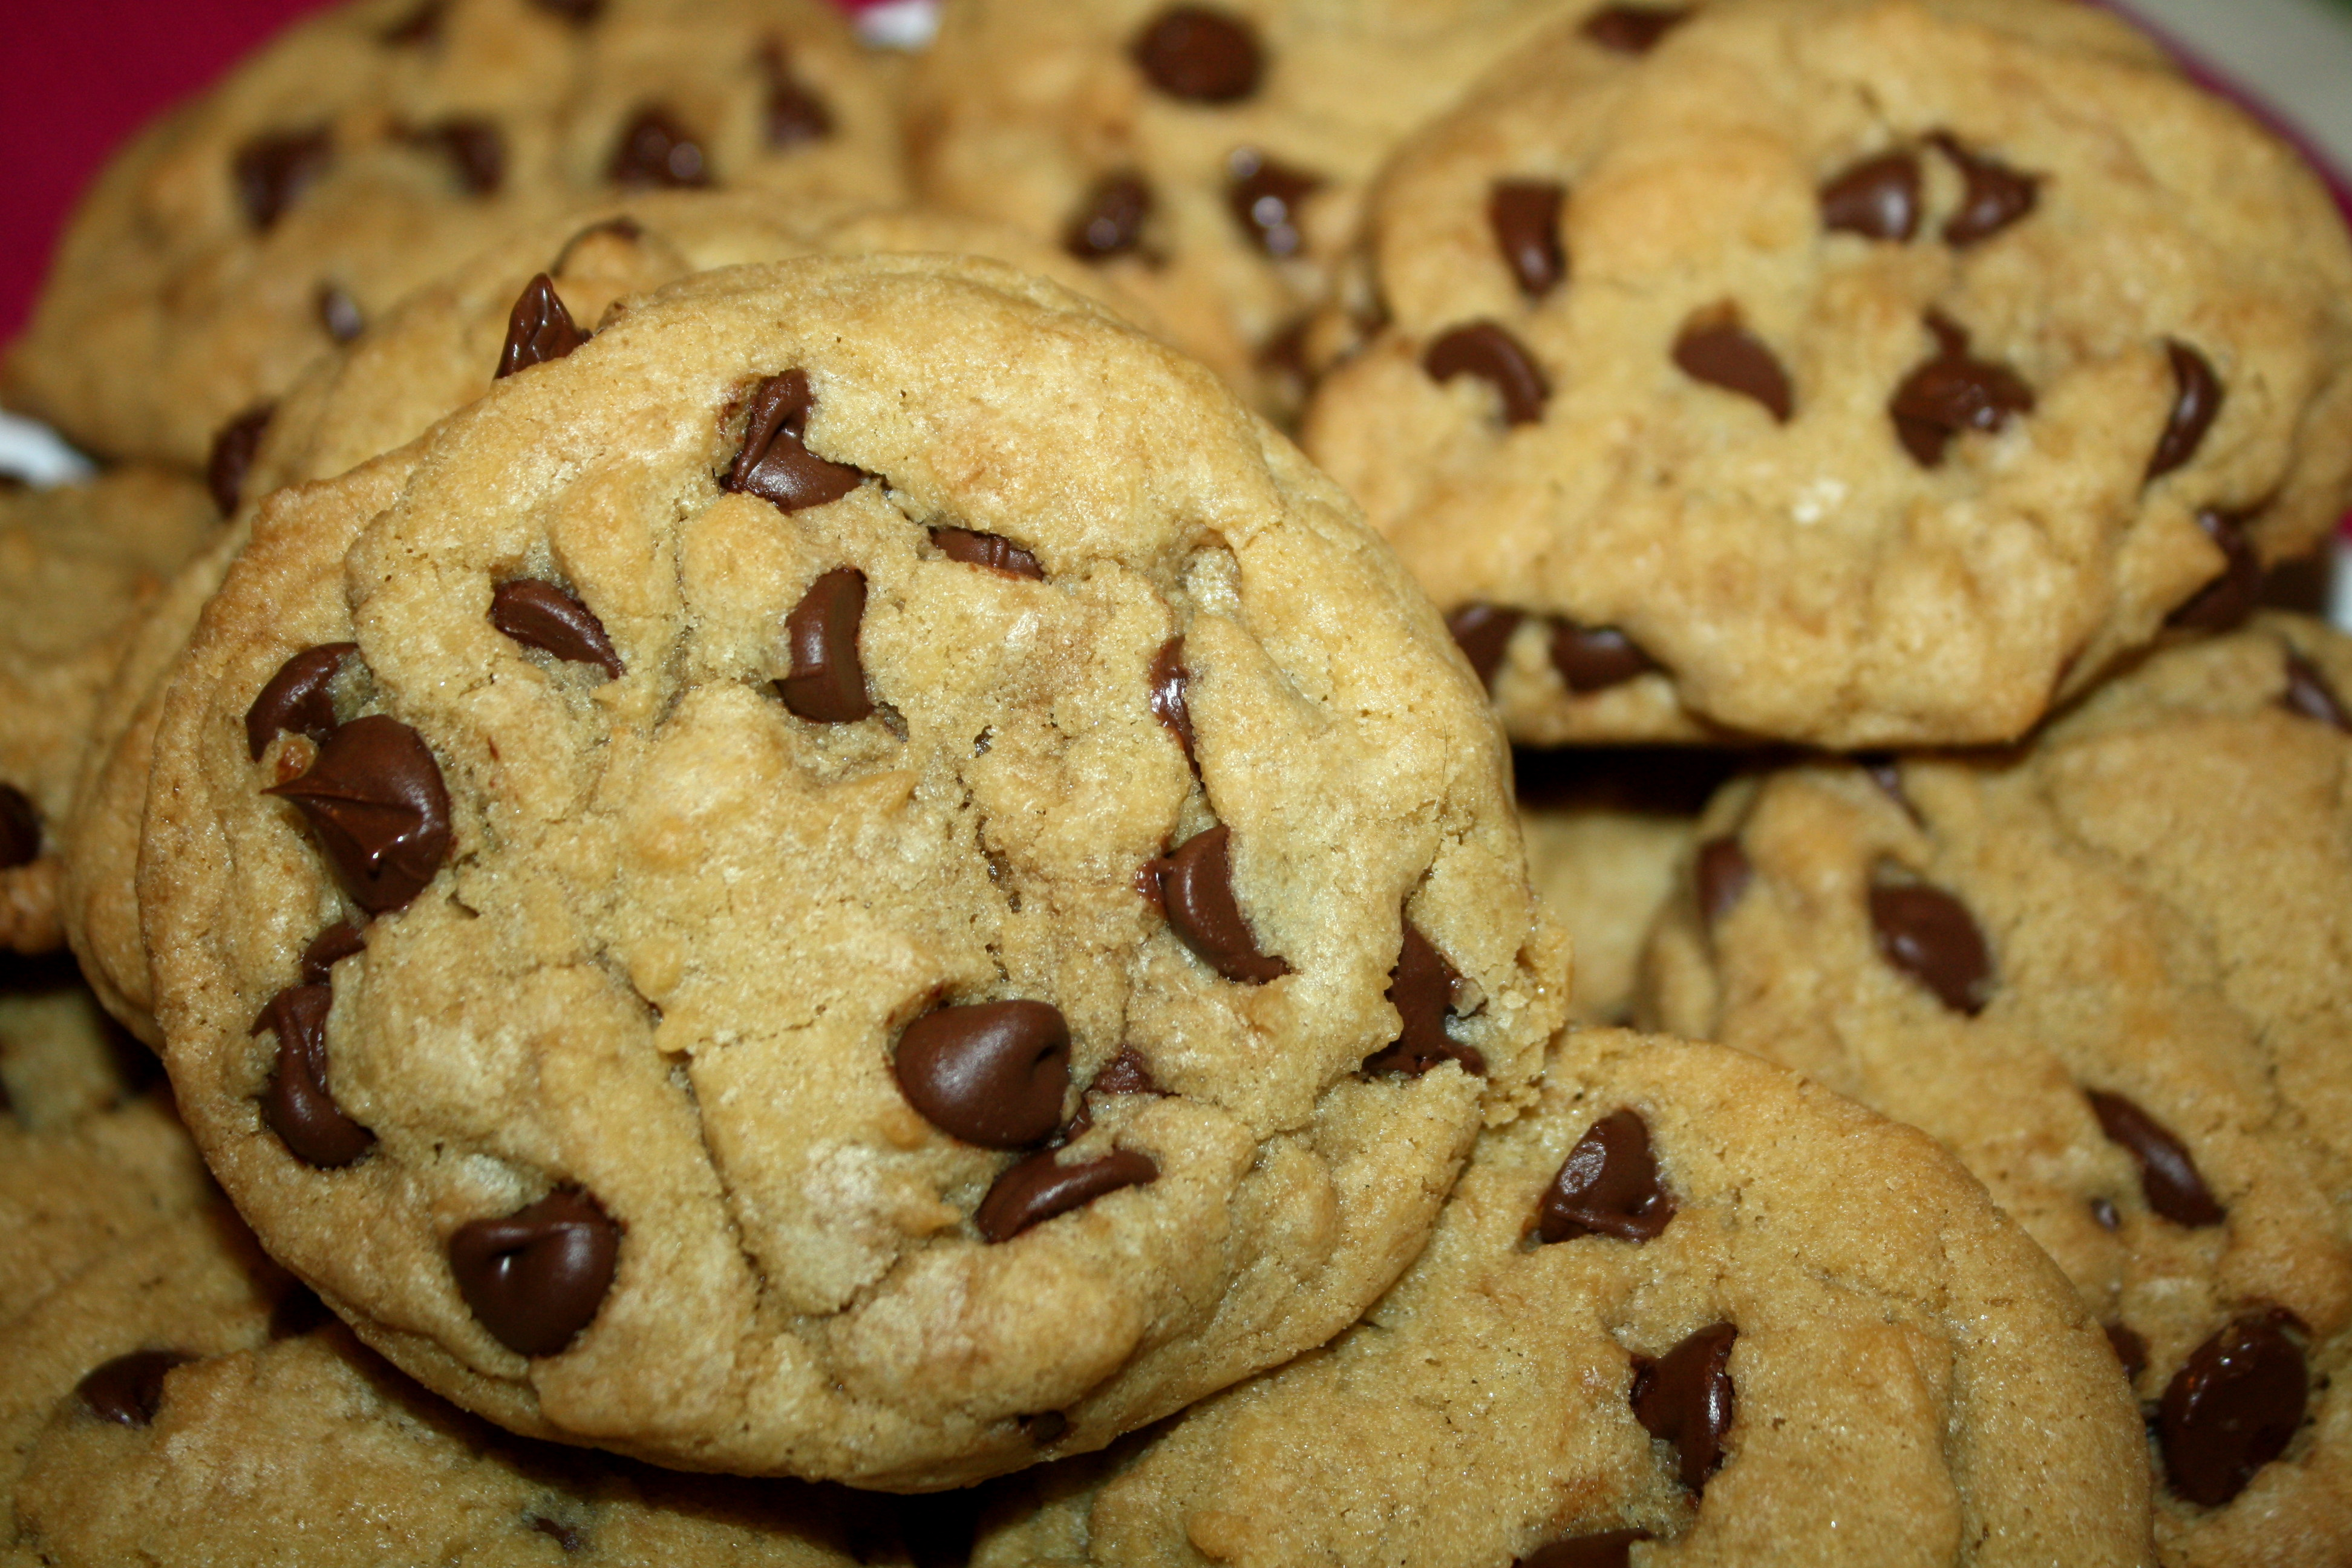 Baking cookies is always a good idea. Source:http://thequotablekitchen.com/thick-chewy-chocolate-chip-cookies/